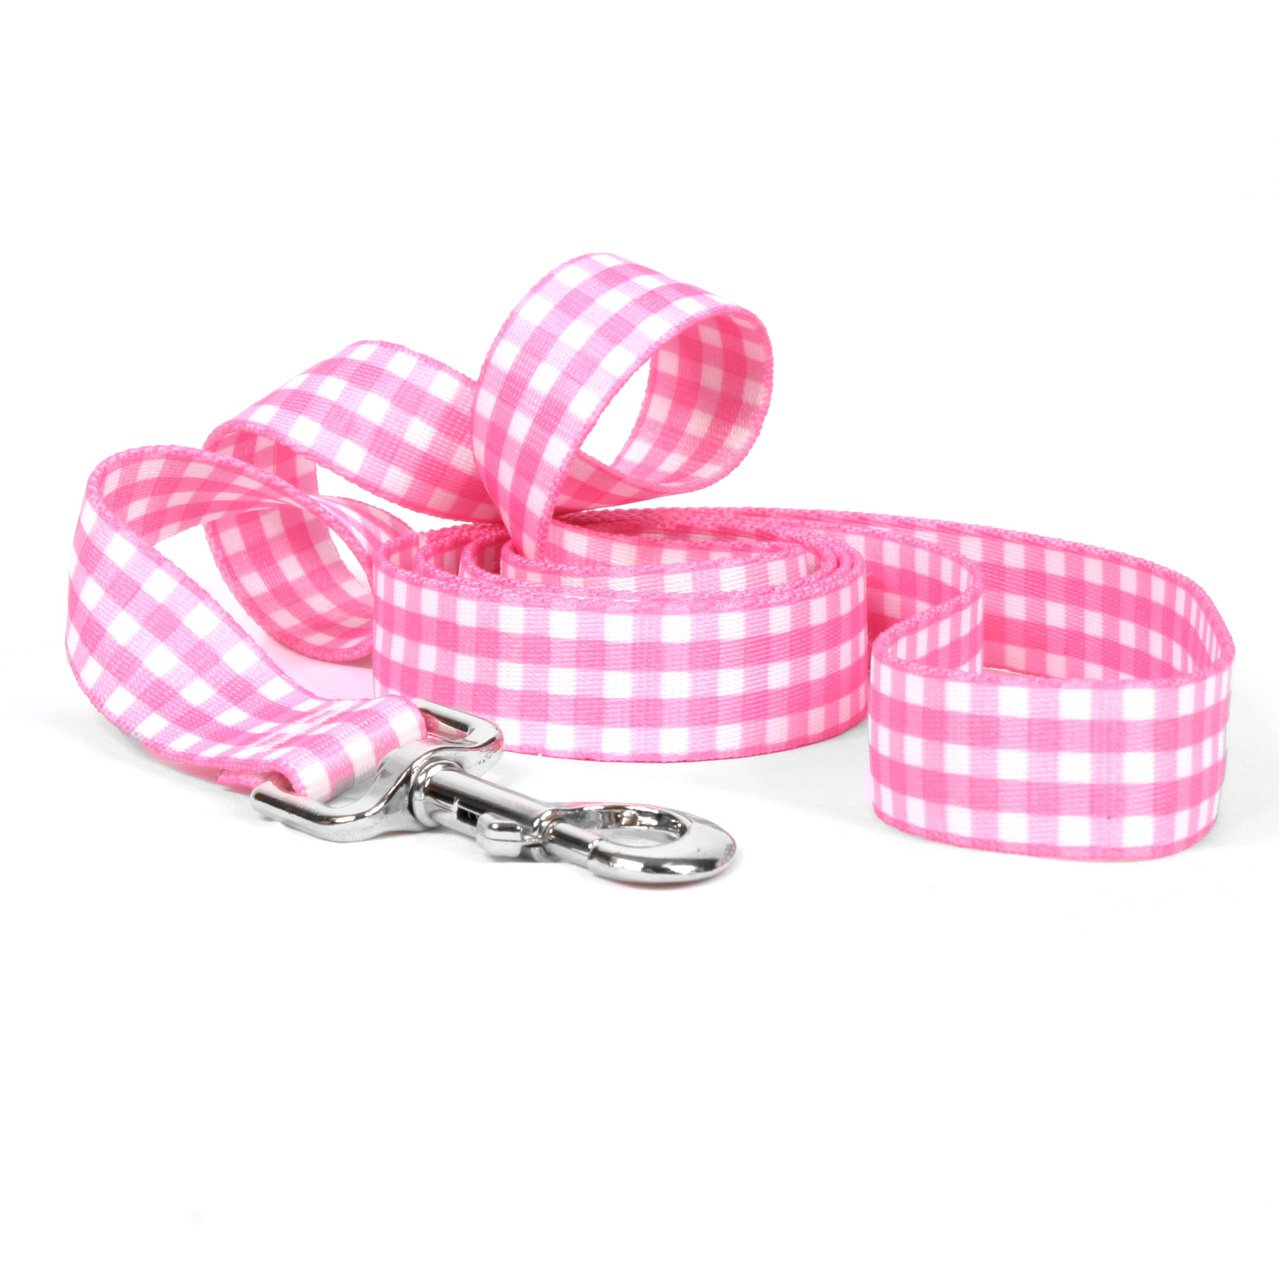 Yellow Dog Design Gingham Pink Dog Leash 1'' Wide and 5' (60'') Long, Large by Yellow Dog Design